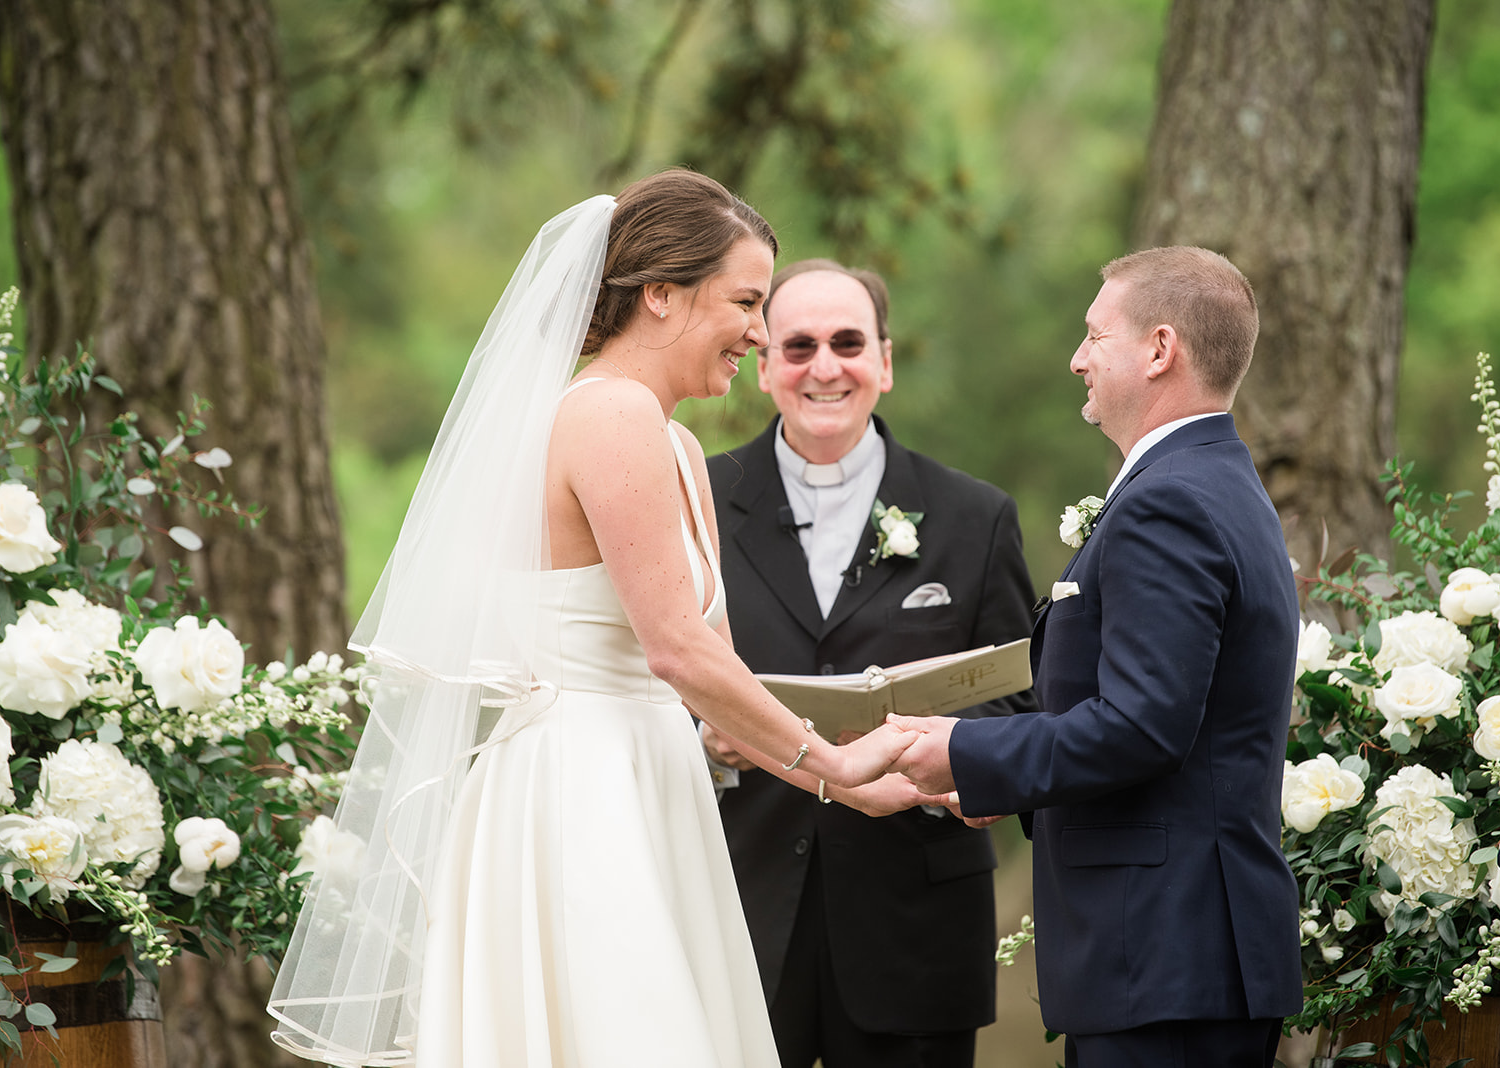 bride and groom smile during their wedding ceremony